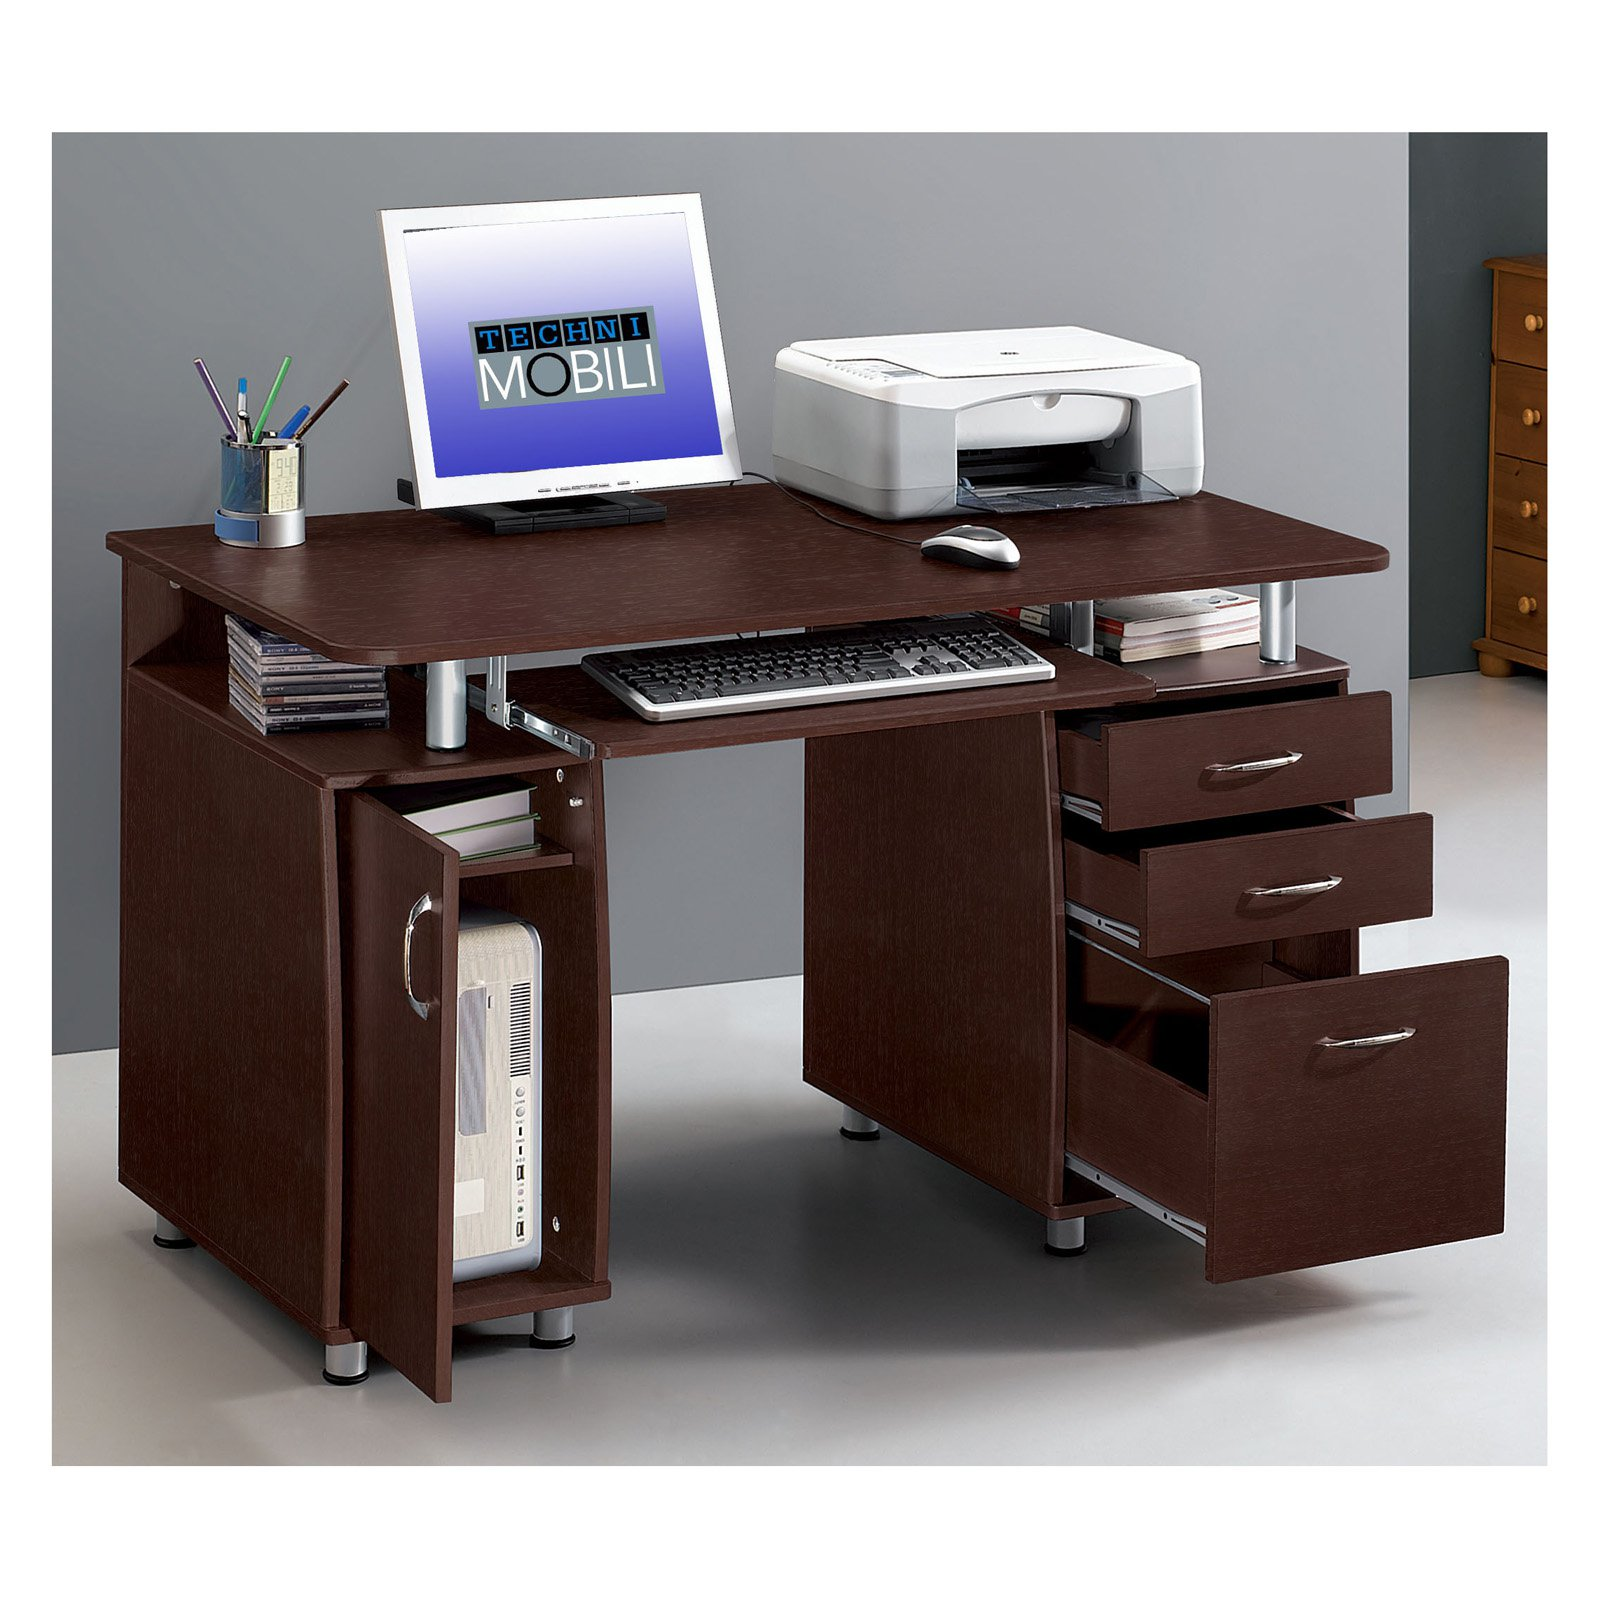 Merveilleux Techni Mobili Complete Computer Workstation With Cabinet And Drawers    Chocolate   Walmart.com